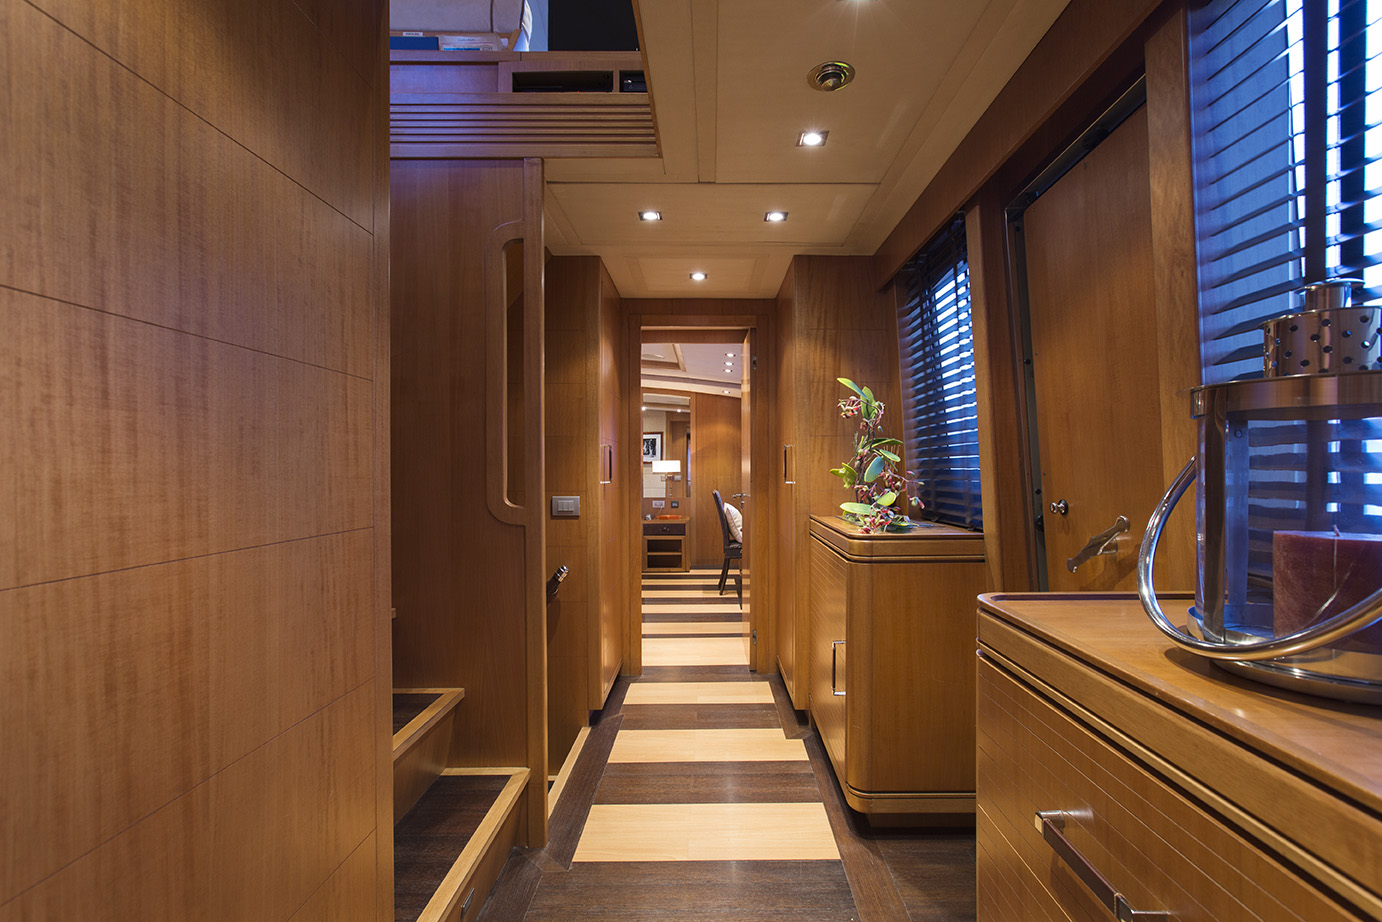 Foyer Luxury Yacht : Cappuccino foyer luxury yacht browser by